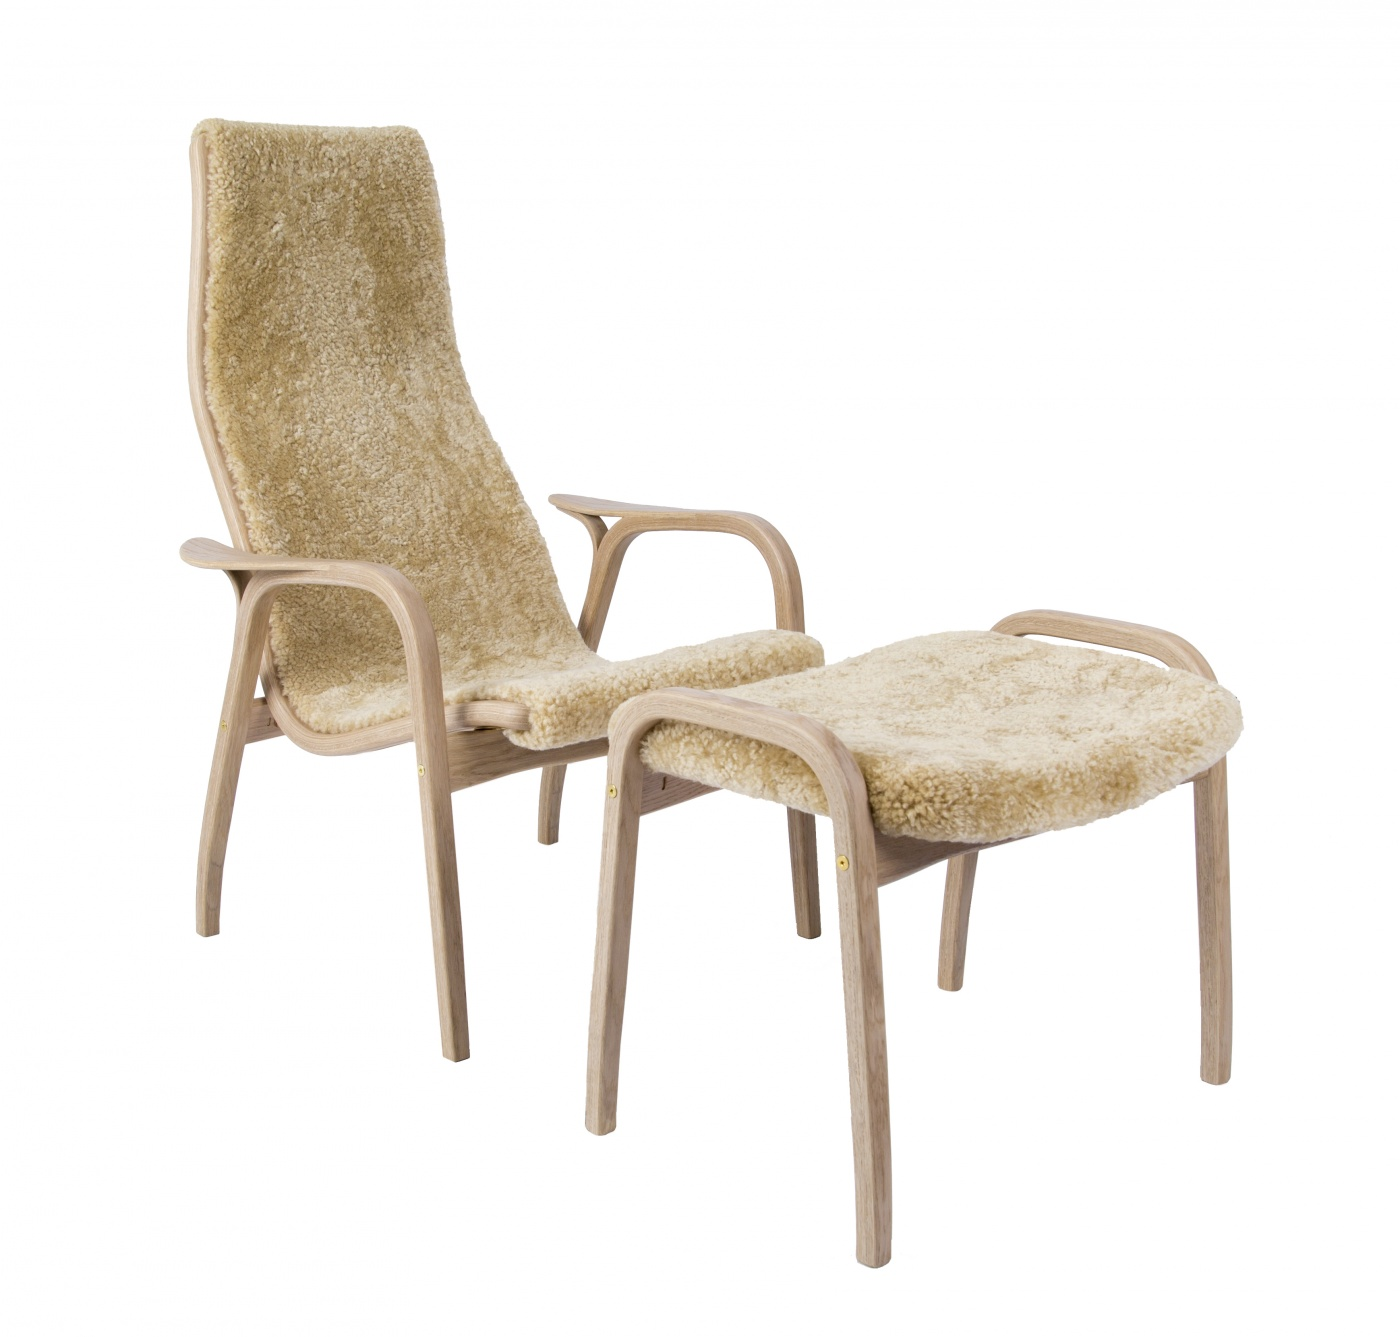 Lamino Chair and Footstool  75th Anniversary Edition